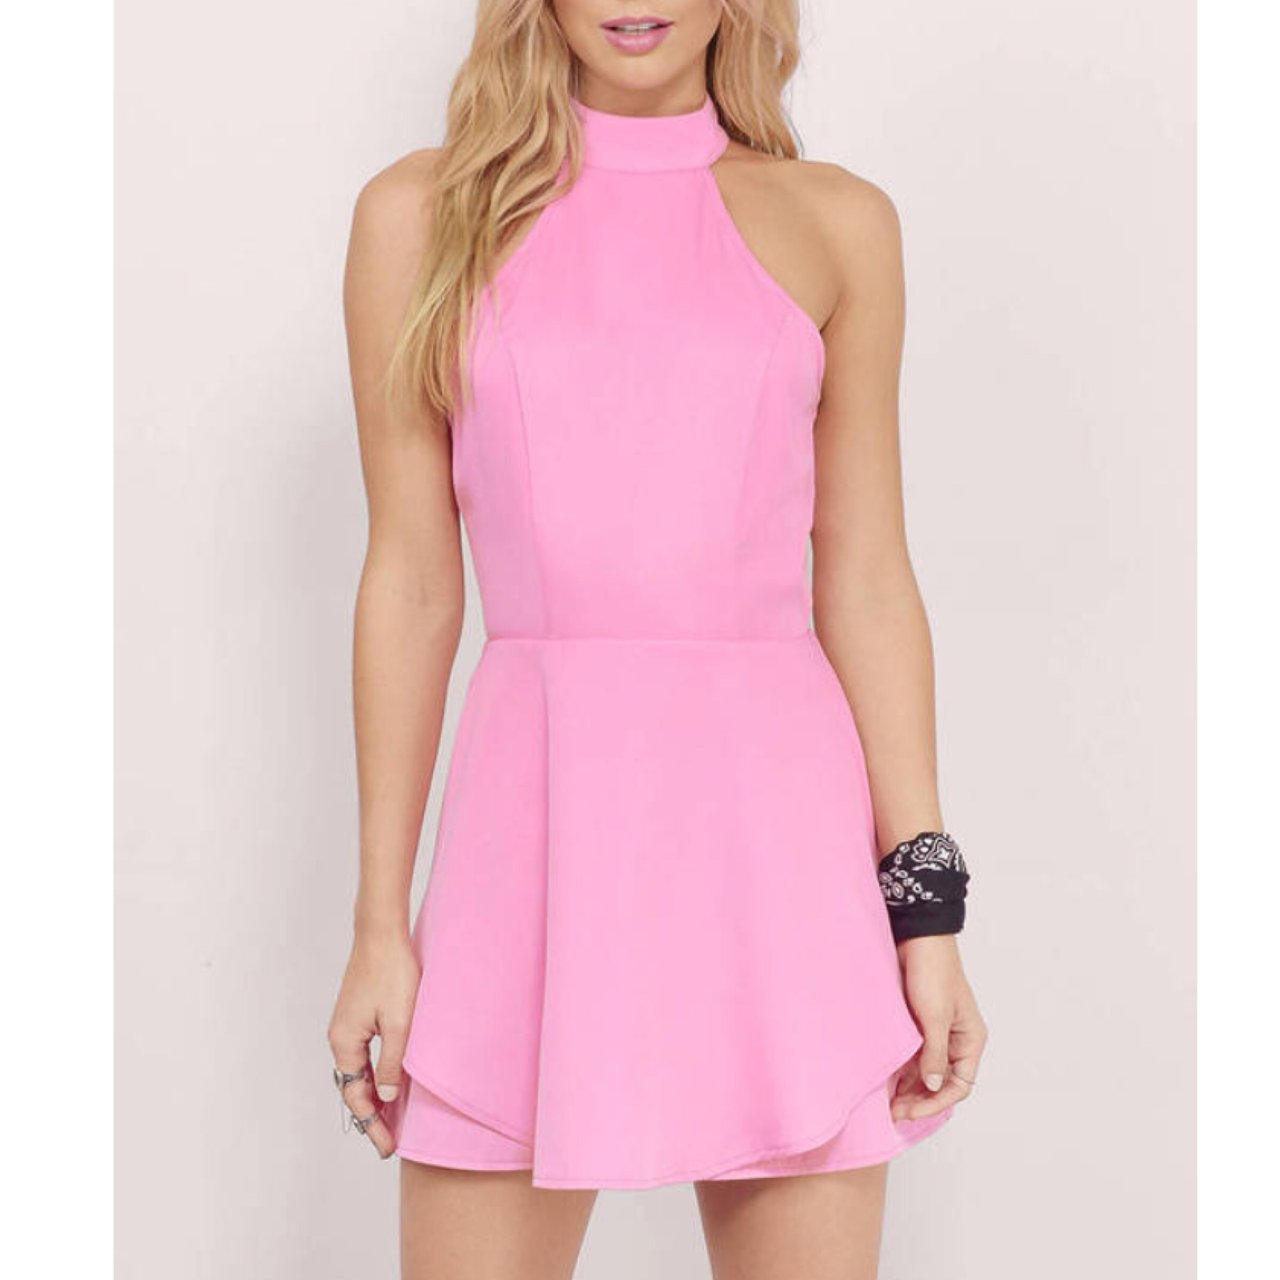 ded31849a8 Tobi Love   Lust pink high neck skater dress The color is - Depop